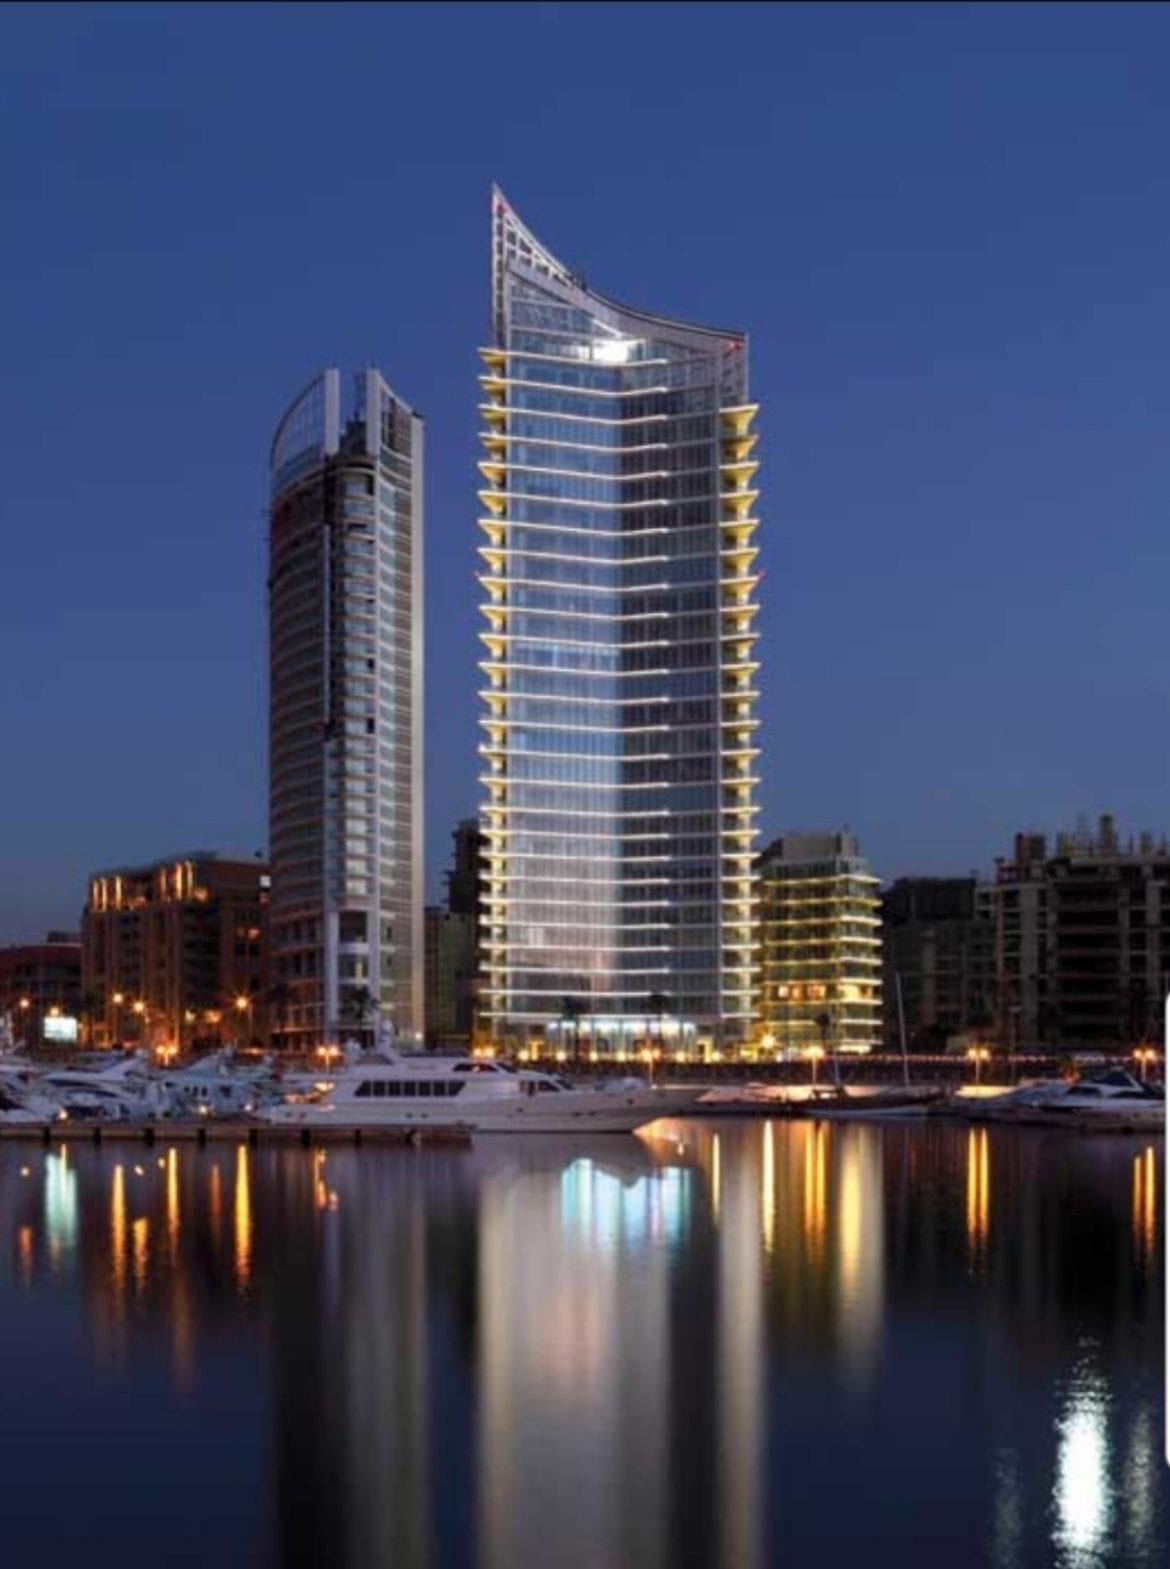 Marina Tower in Beirut, Lebanon